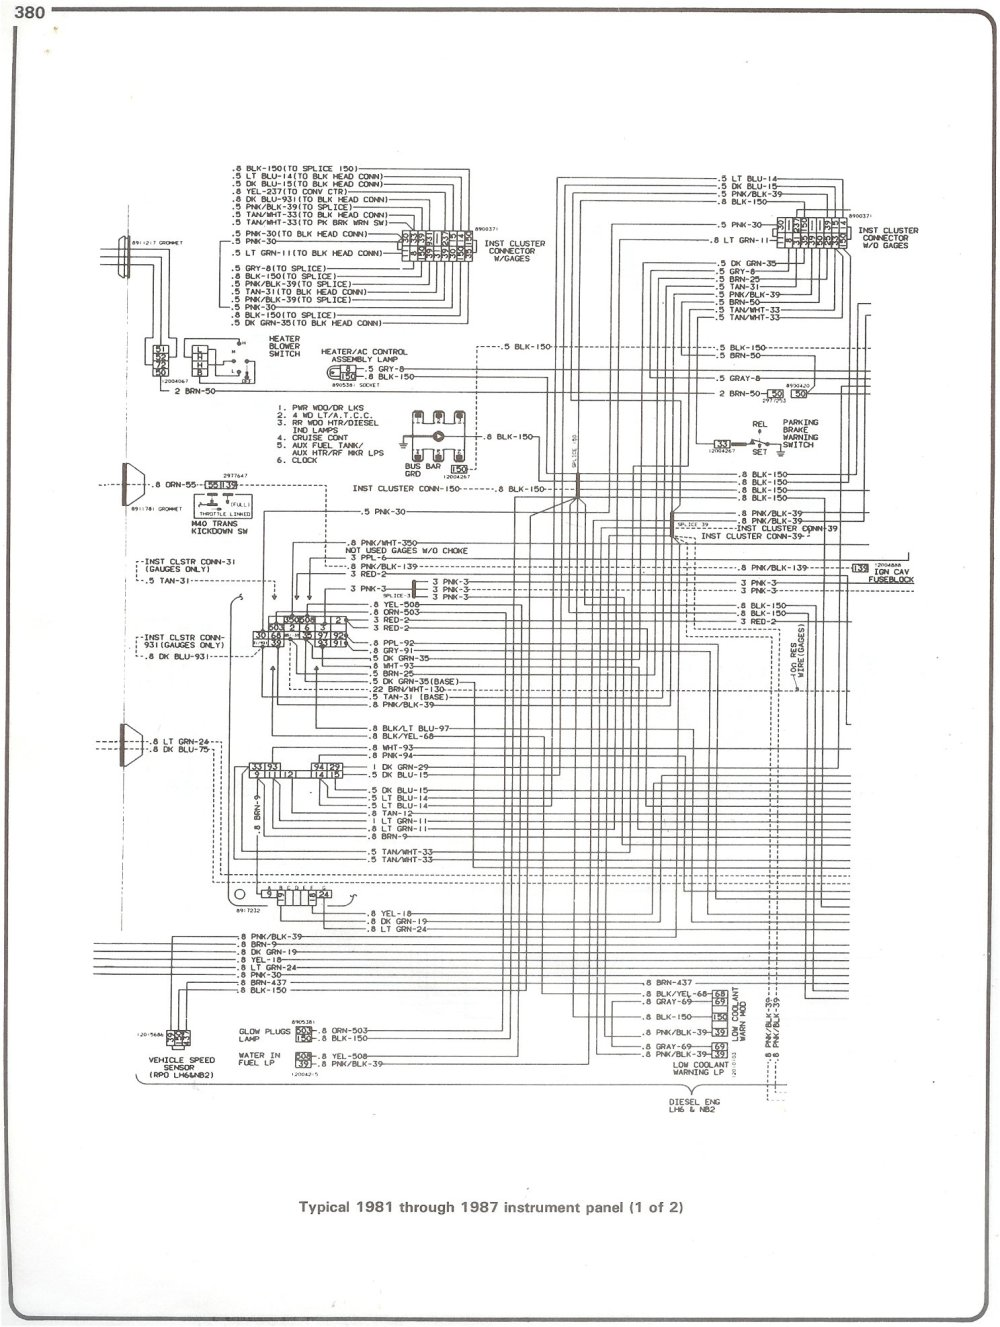 medium resolution of  blazer wiring schematics chevrolet truck schematics wiring diagram complete 73 87 wiring diagrams81 87 instrument panel page 1